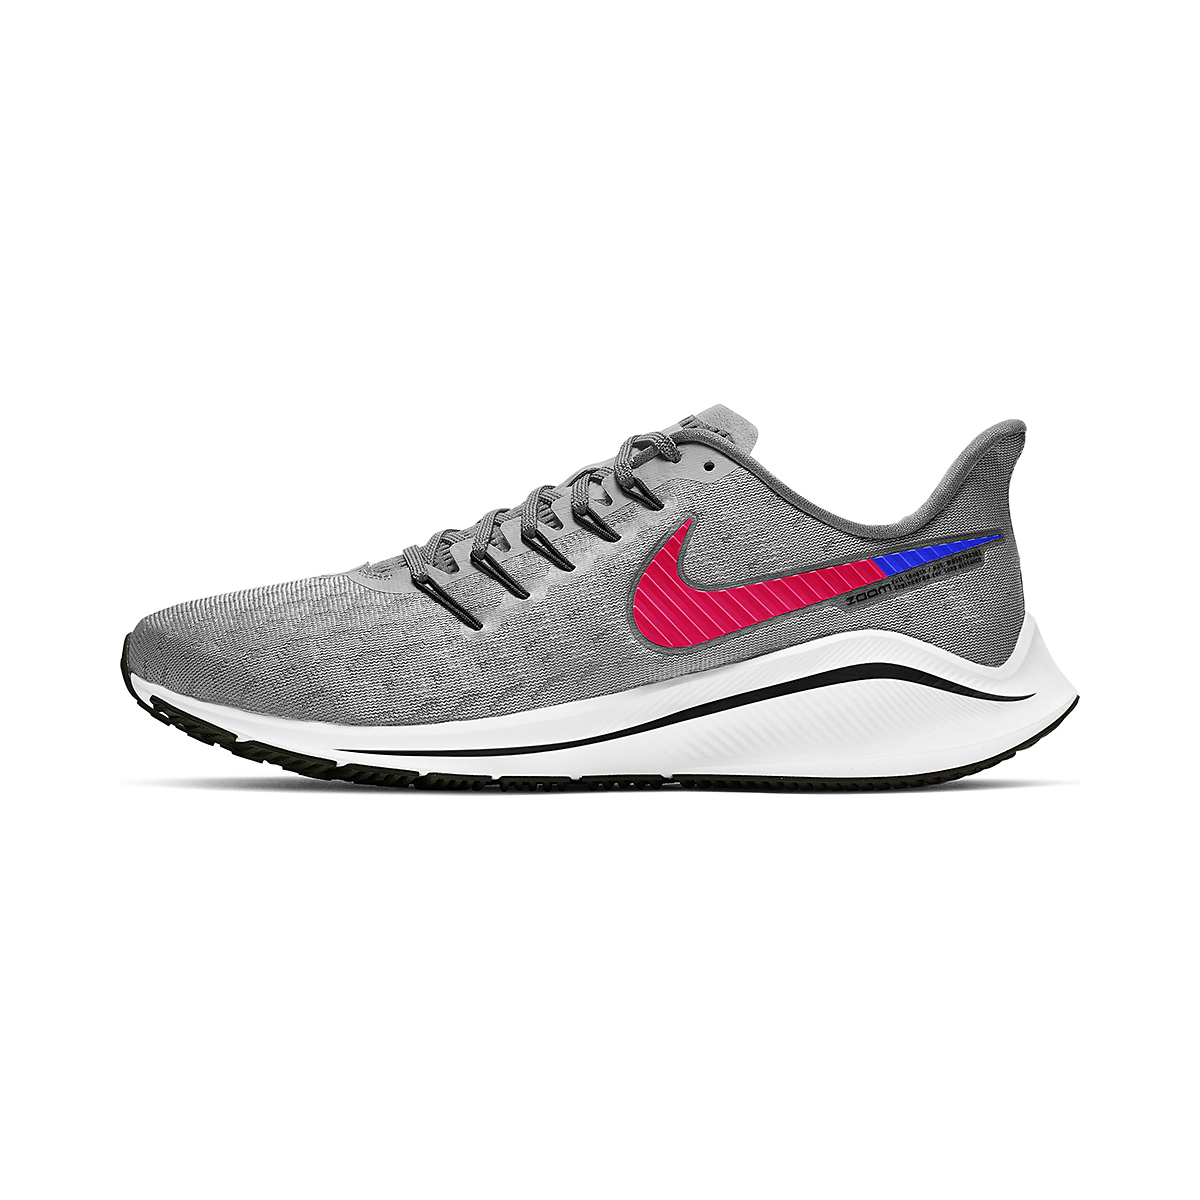 Men's Nike Vomero 14 Running Shoe - Color: Wolf Grey - Size: 6 - Width: Regular, Wolf Grey, large, image 2